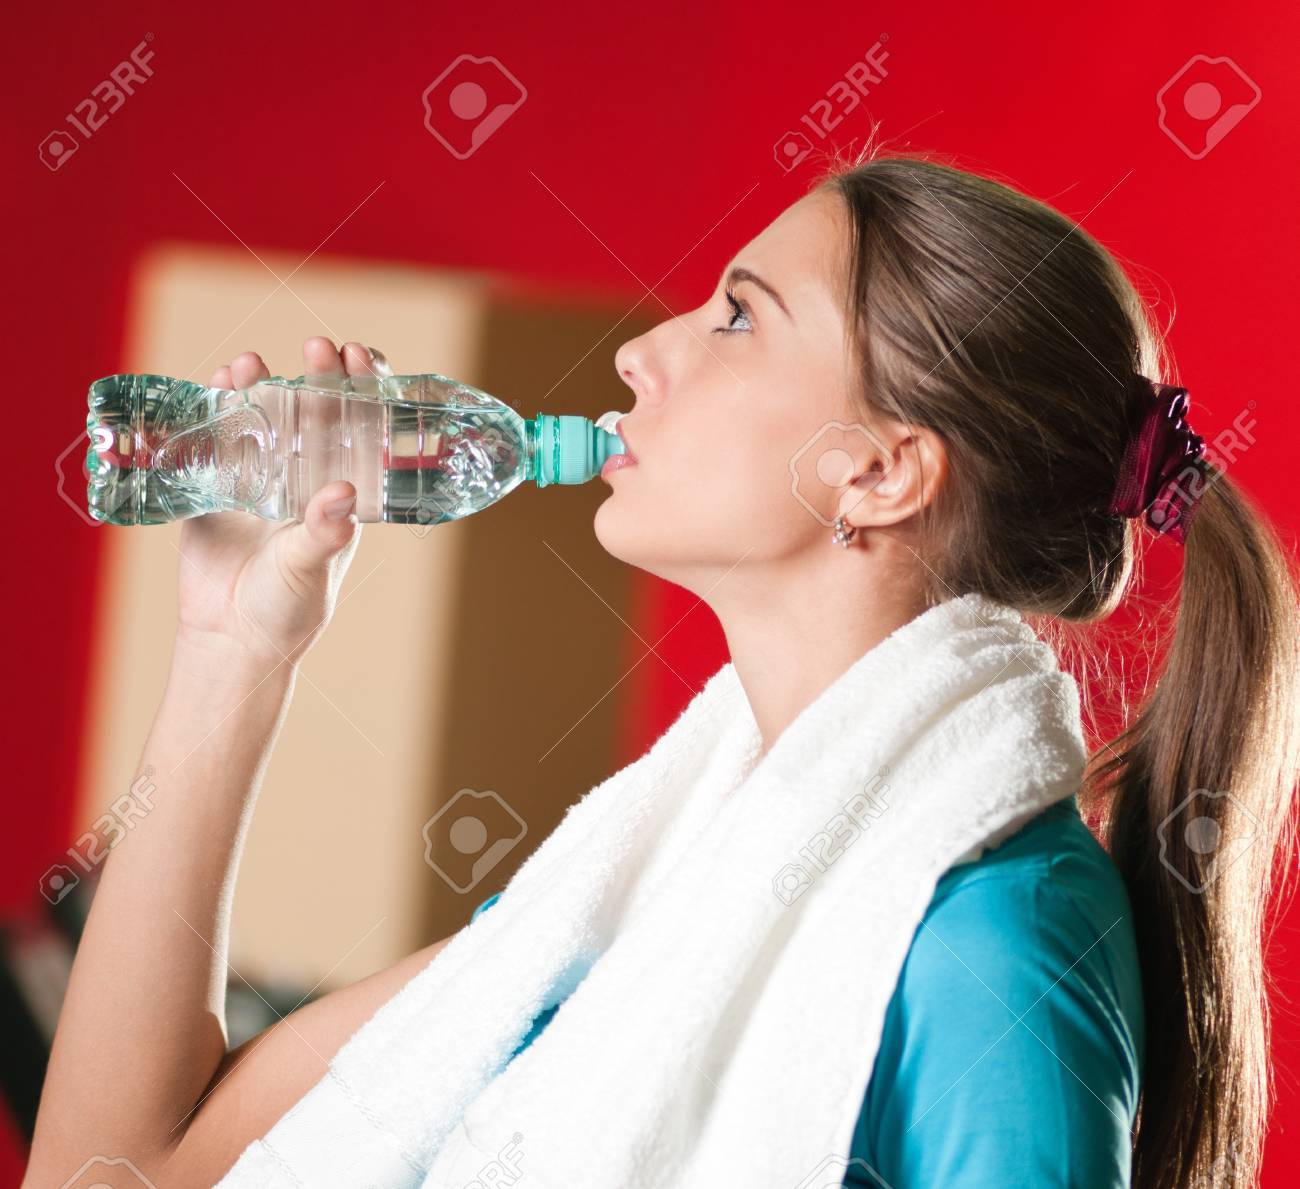 Portrait of a woman at the gym drinking water stock photo picture portrait of a woman at the gym drinking water stock photo 10055676 sciox Gallery